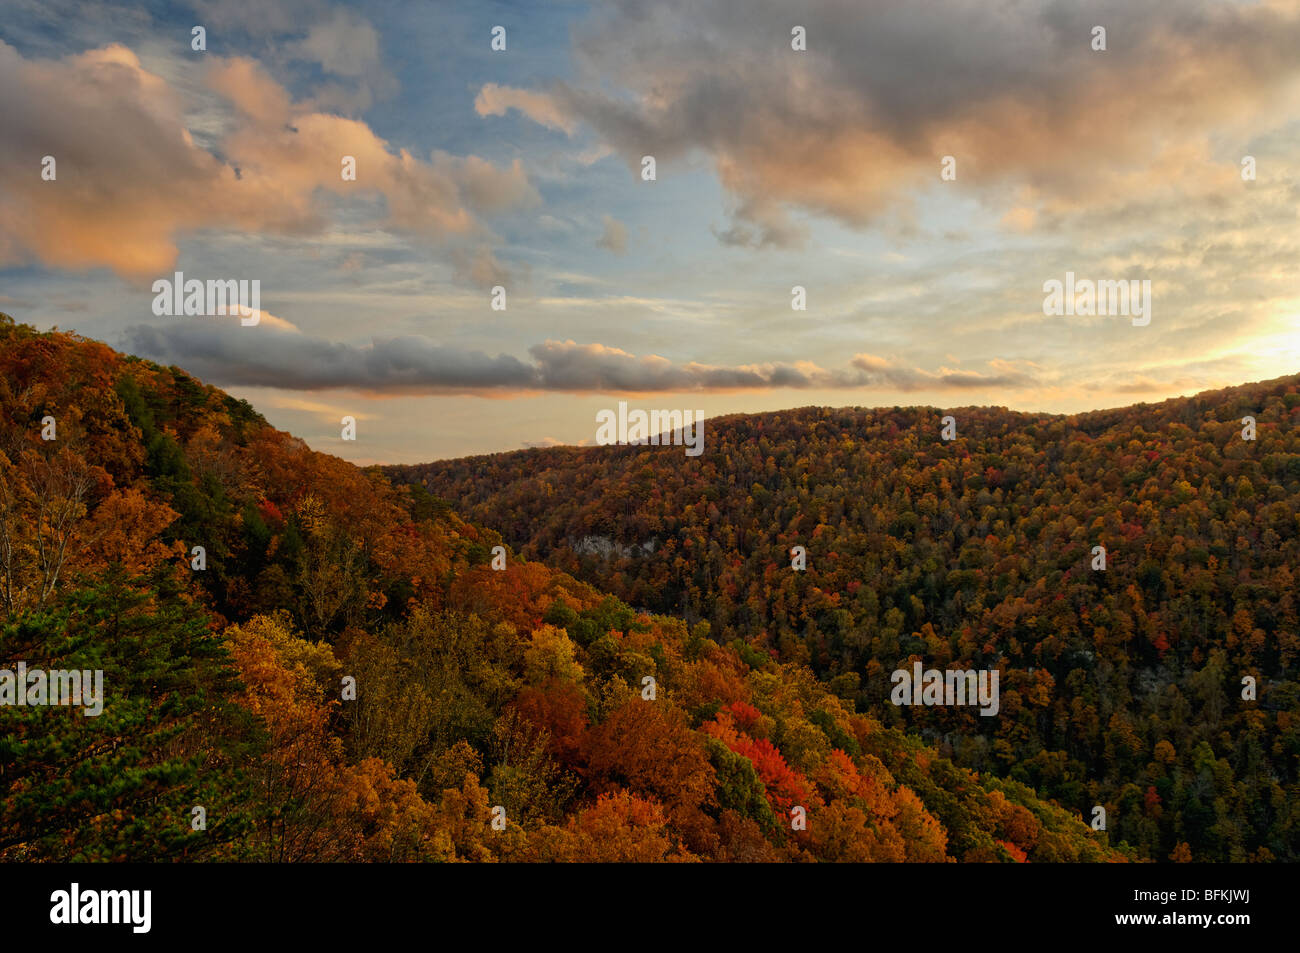 Autumn Sunset Over Pine Mountain from State Line Overlook in Breaks Interstate Park in Virginia - Stock Image